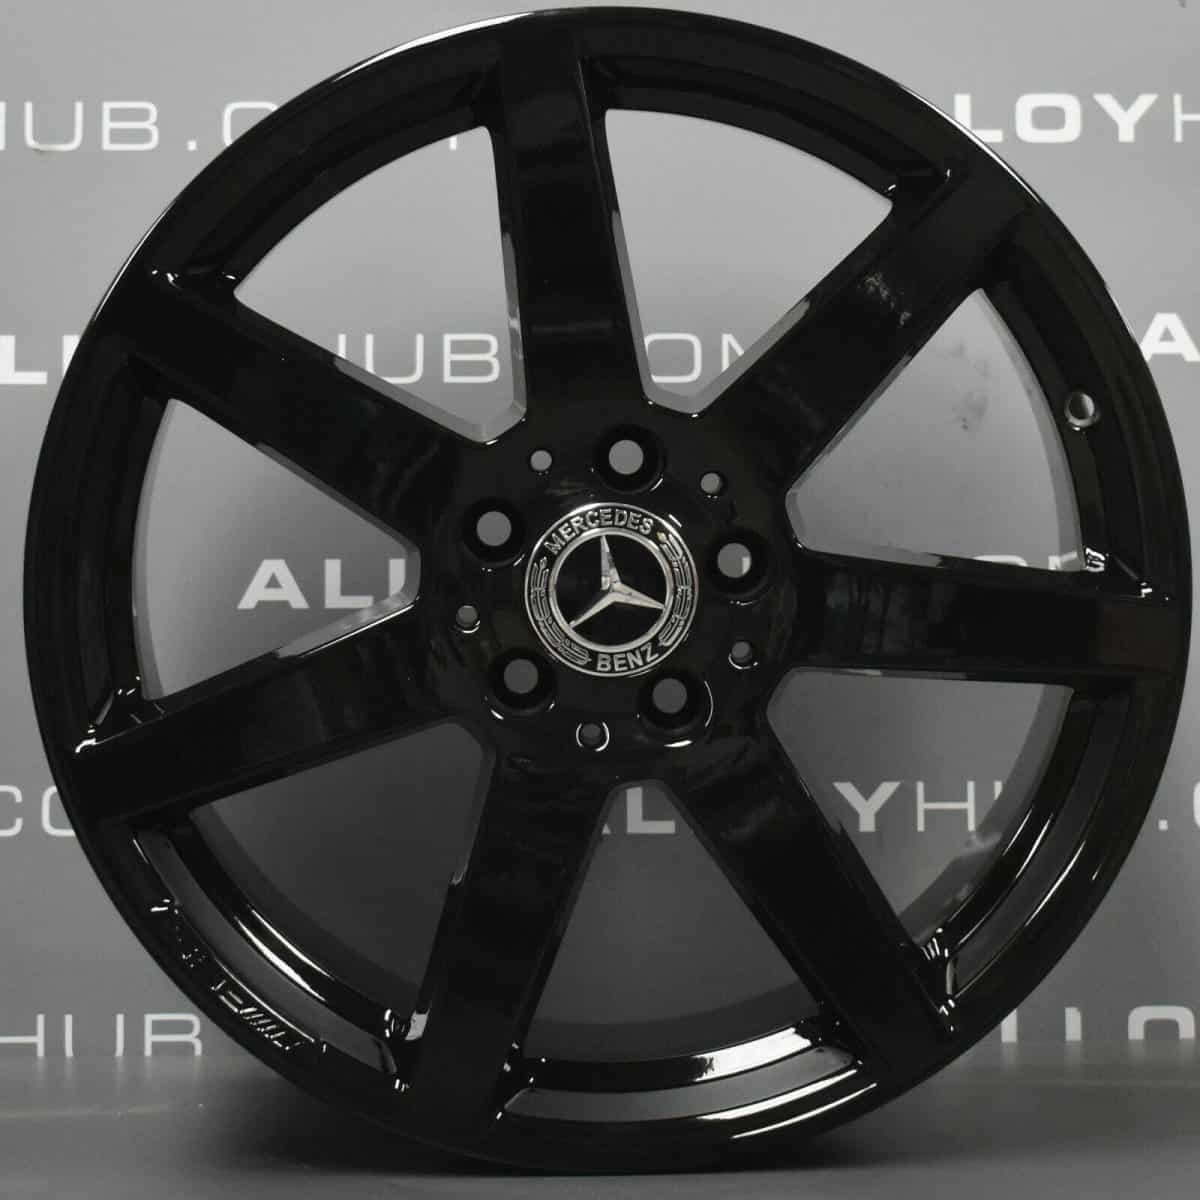 """Genuine Mercedes-Benz C-Class AMG W204 7 Spoke 18"""" inch Alloy Wheels with Gloss Black Finish A2044019802 A2044019902"""